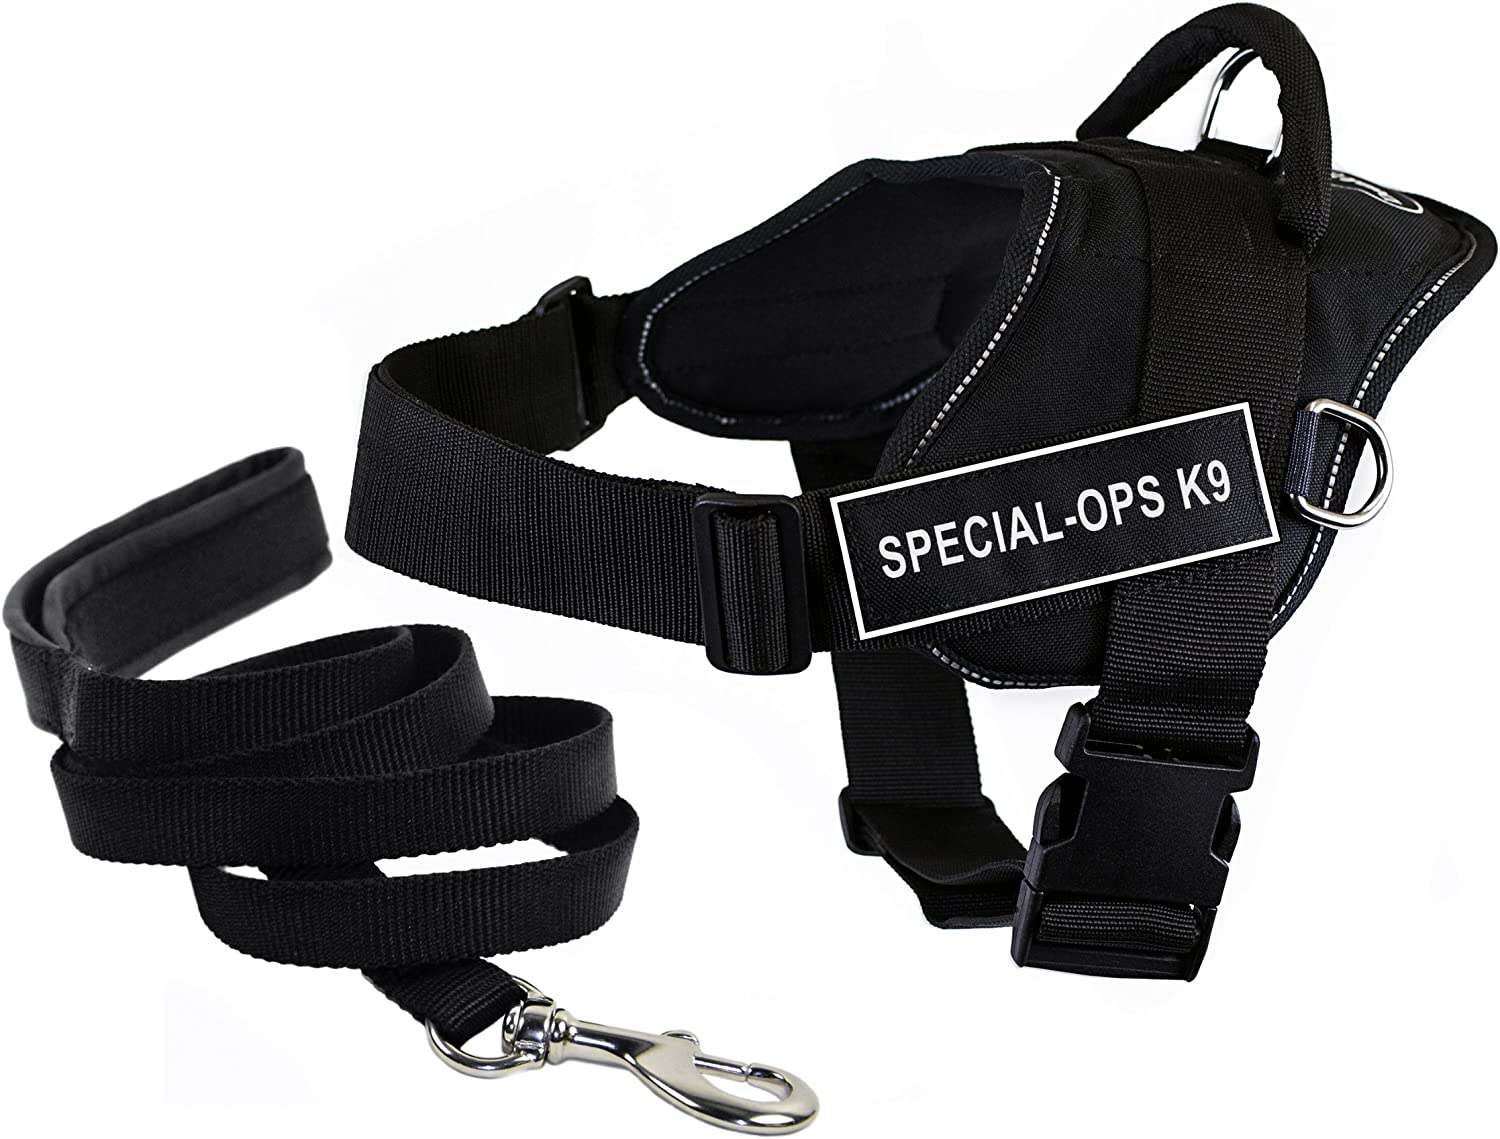 Dean & Tyler's DT Fun SPECIALOPS K9 Harness with Reflective Trim, Small, And 6 ft Padded Puppy Leash.